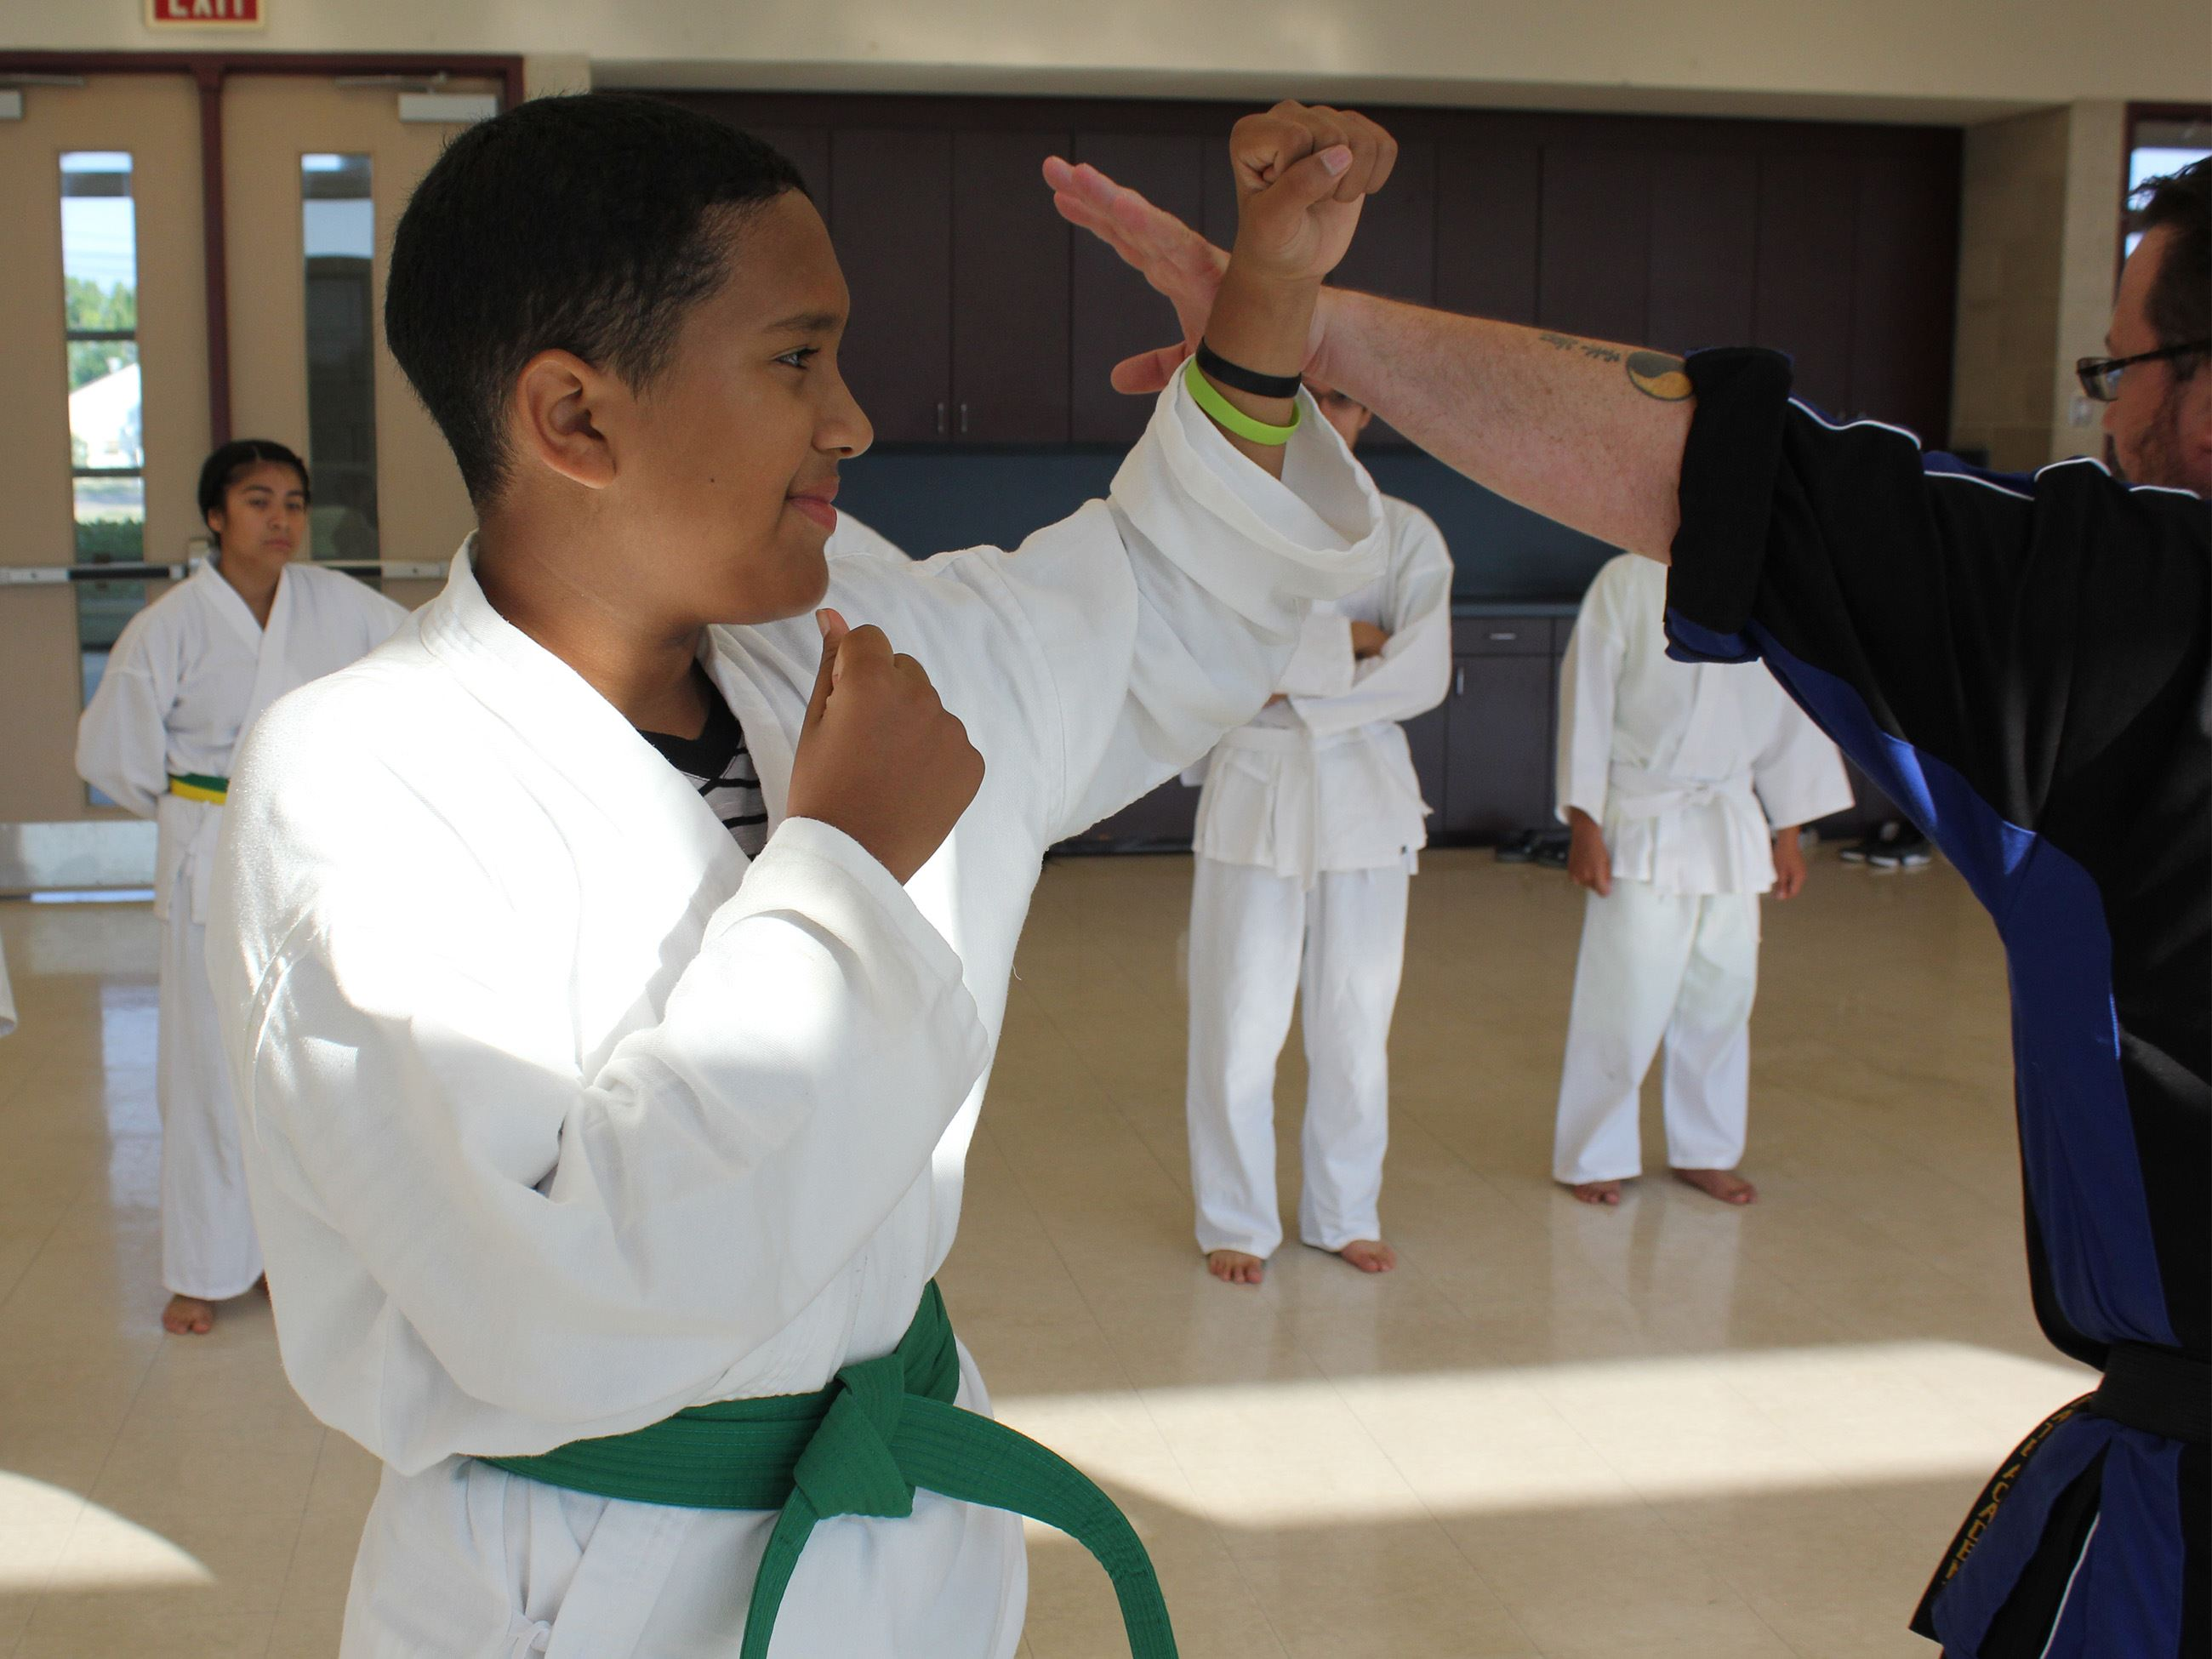 Instructor and student practicing Tae Kwon Do